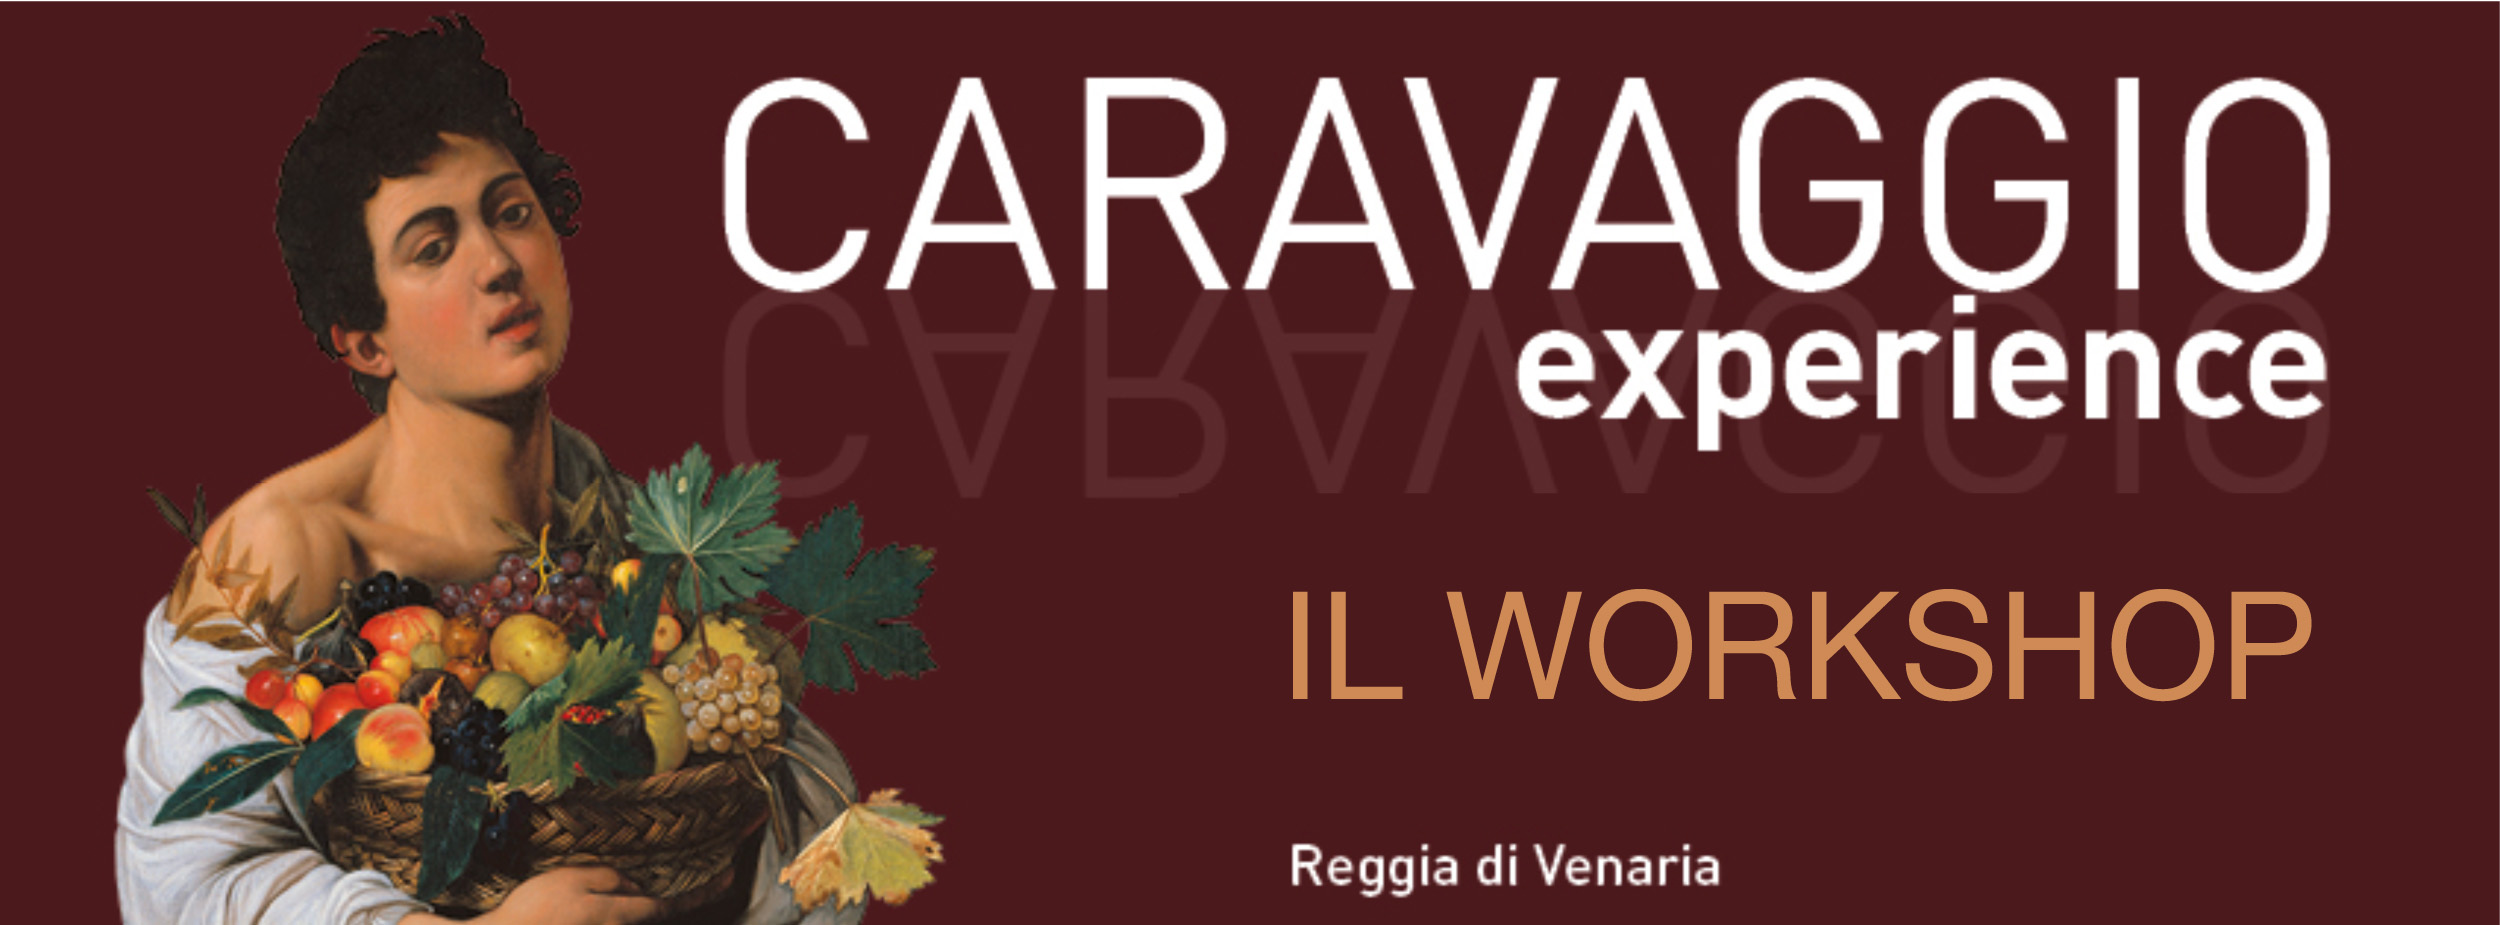 Caravaggio Experience Workshop